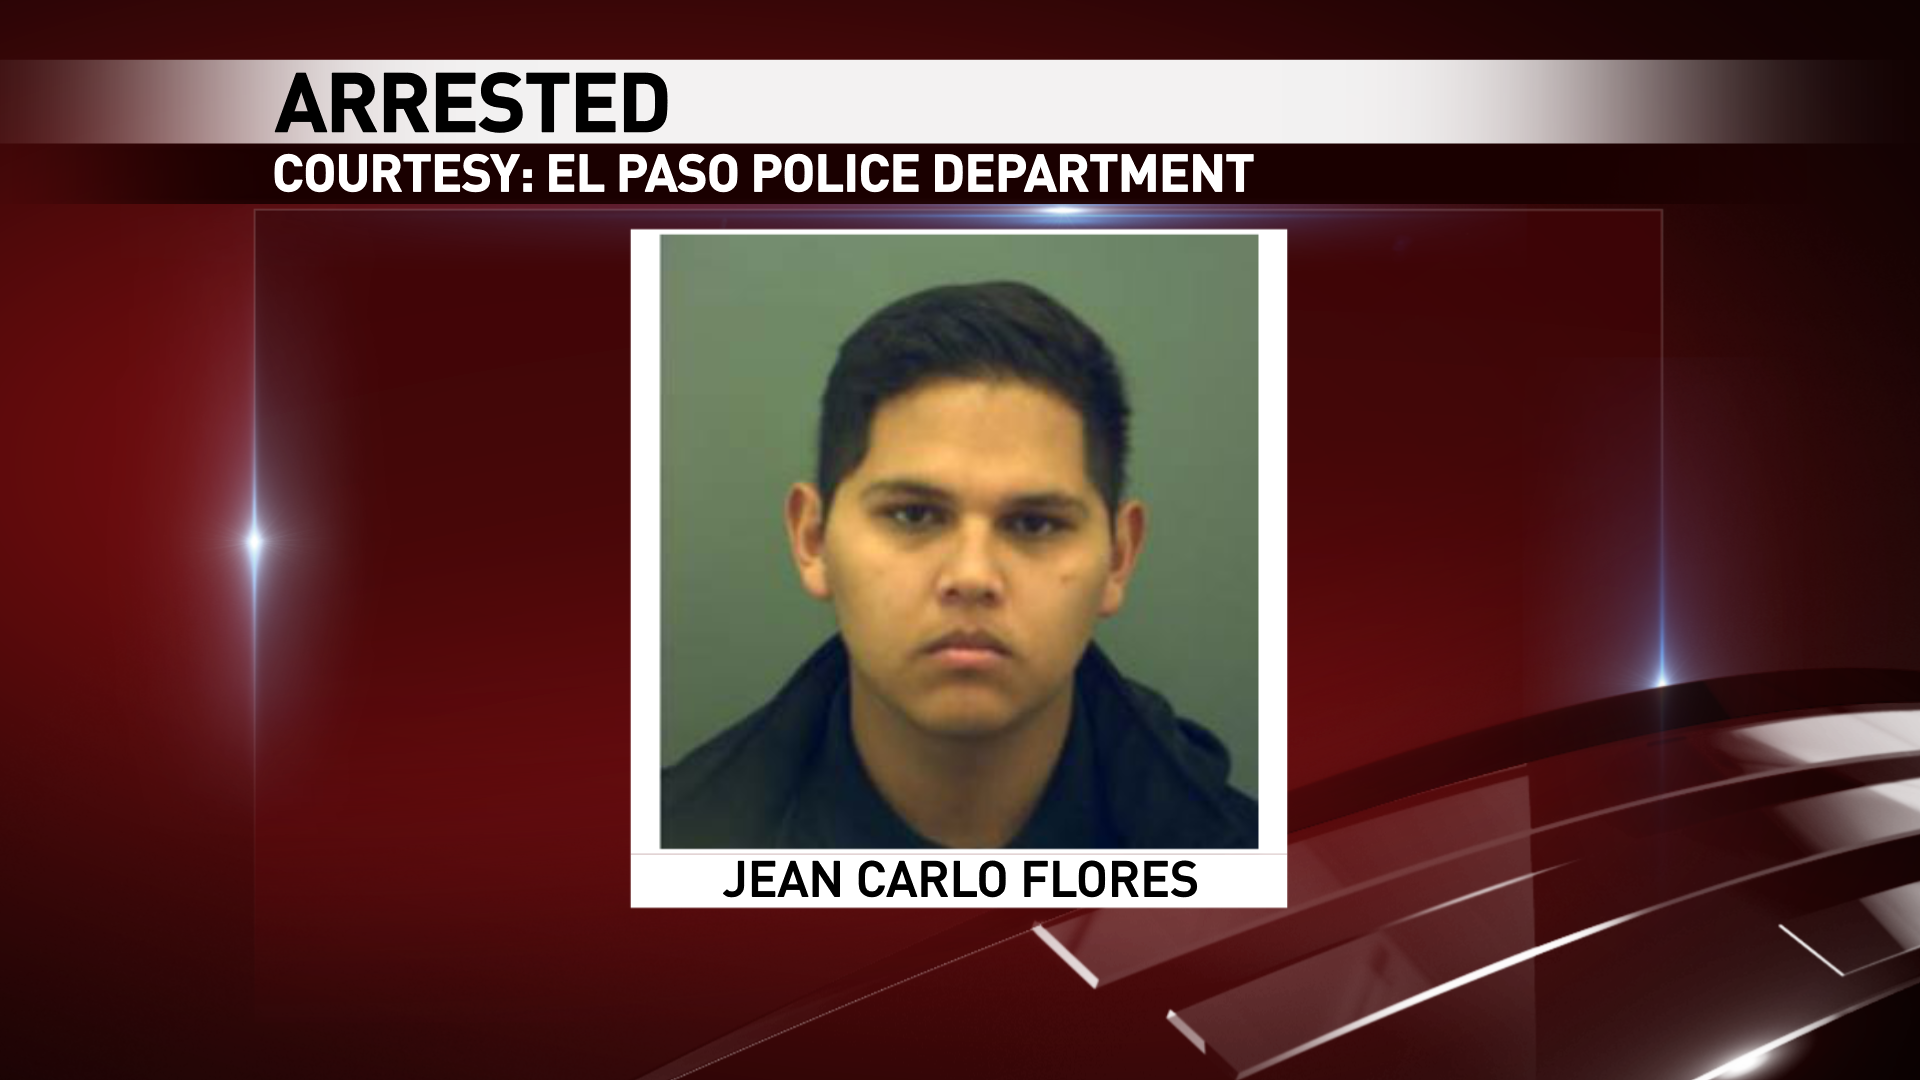 Jean Carlo Flores, 17, faces a charge of theft over $2,500 and under $30,000.